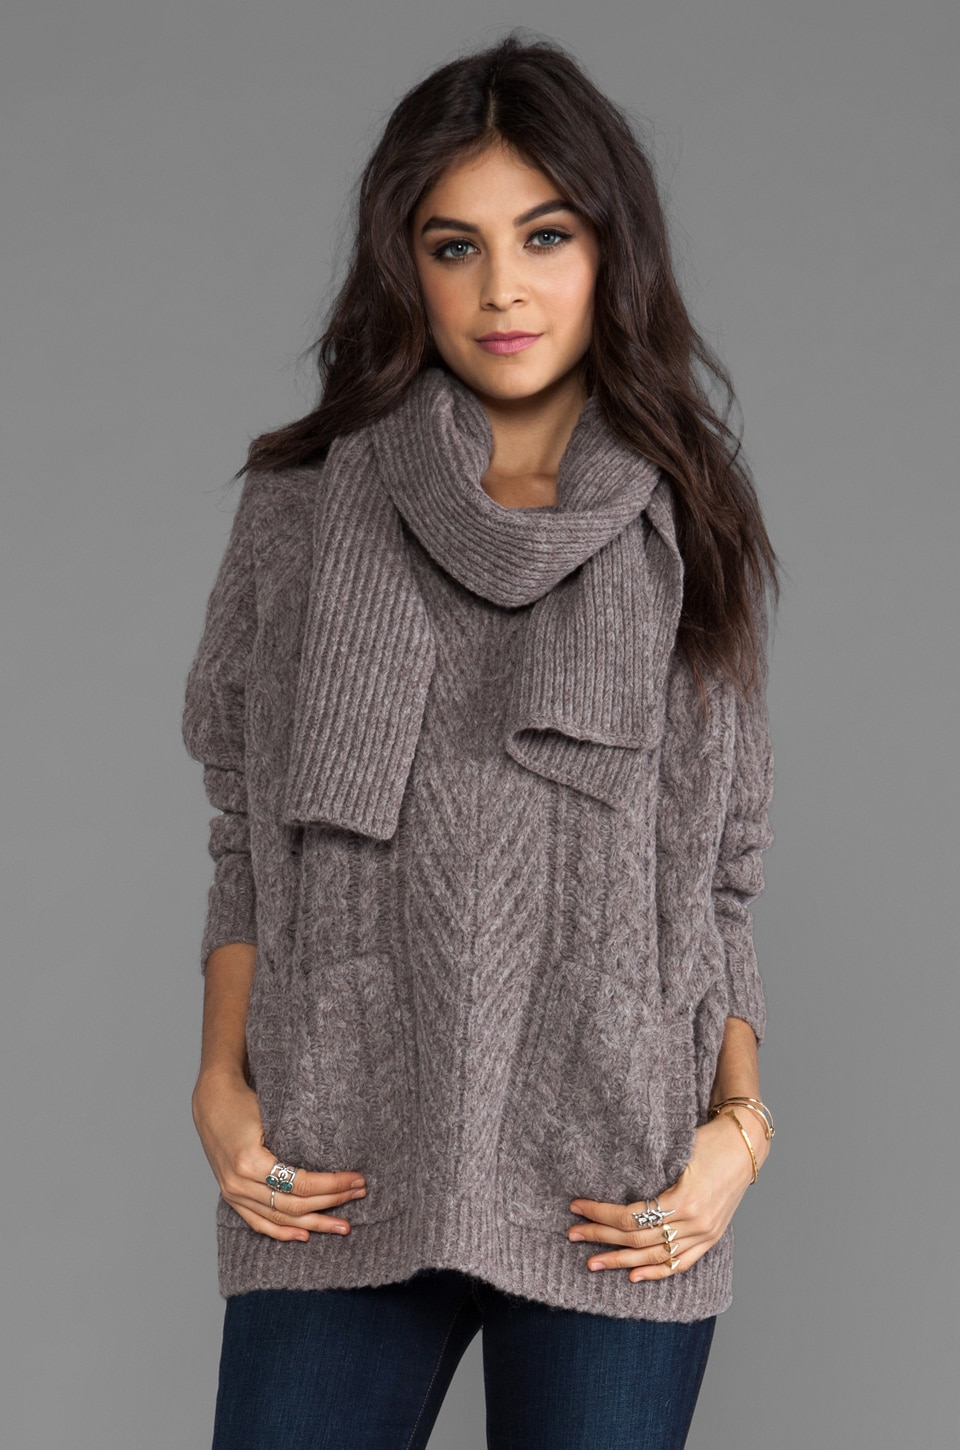 Marc by Marc Jacobs Connolly Sweater in Lavender Grey Melange